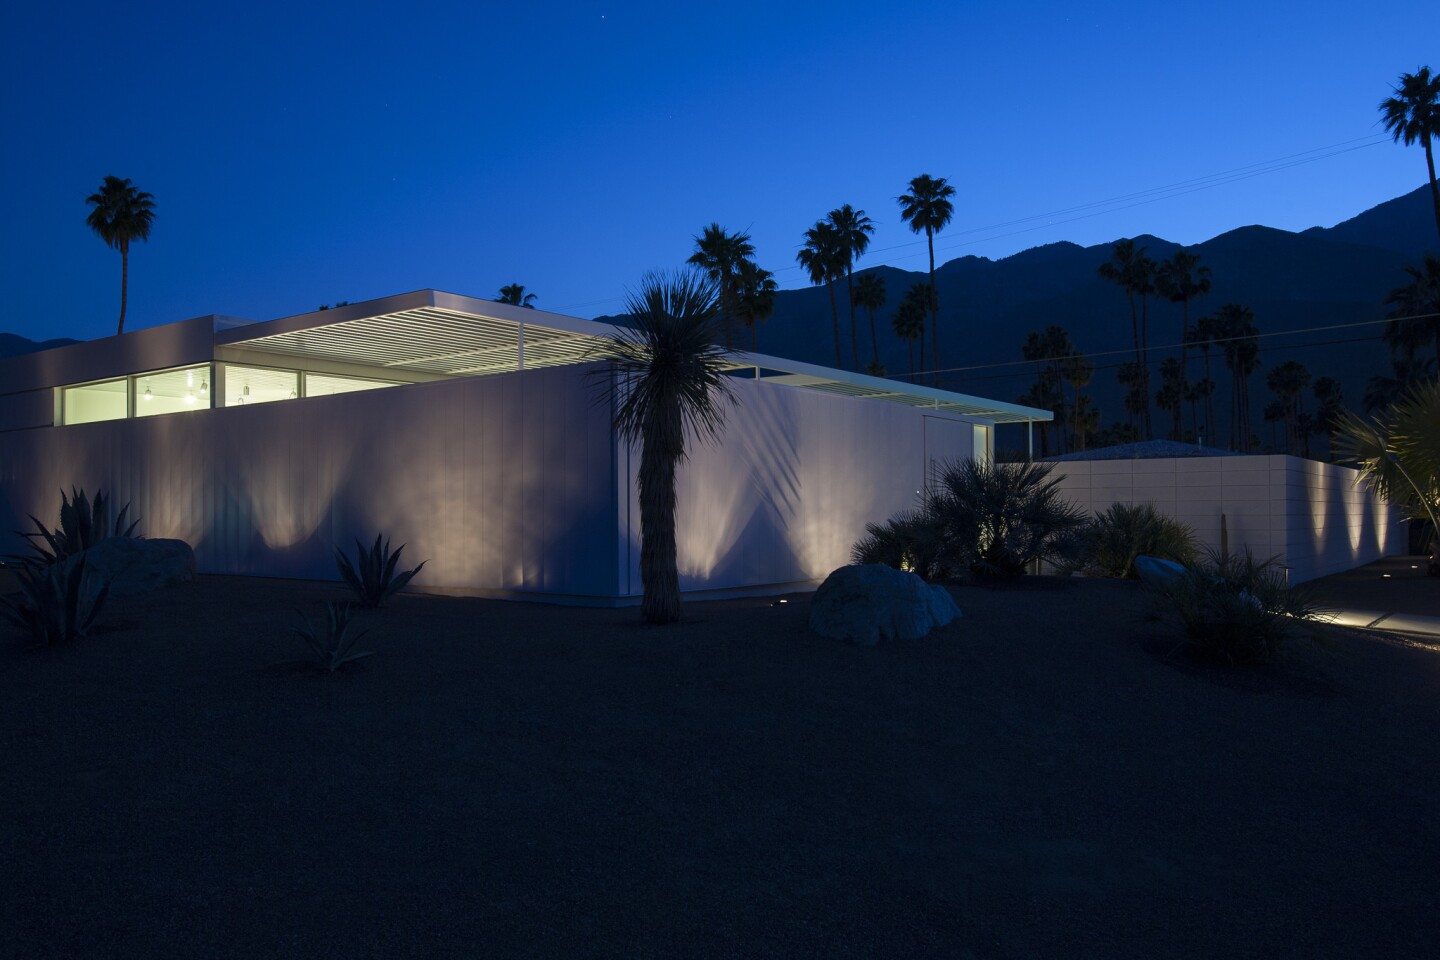 The white walls of Desert Two glow under the silhouettes of palm trees and the San Jacinto Mountains. Developer and project manager Dave McAdam said the house sits on what had been the last empty lot in the Deepwell neighborhood of Palm Springs.